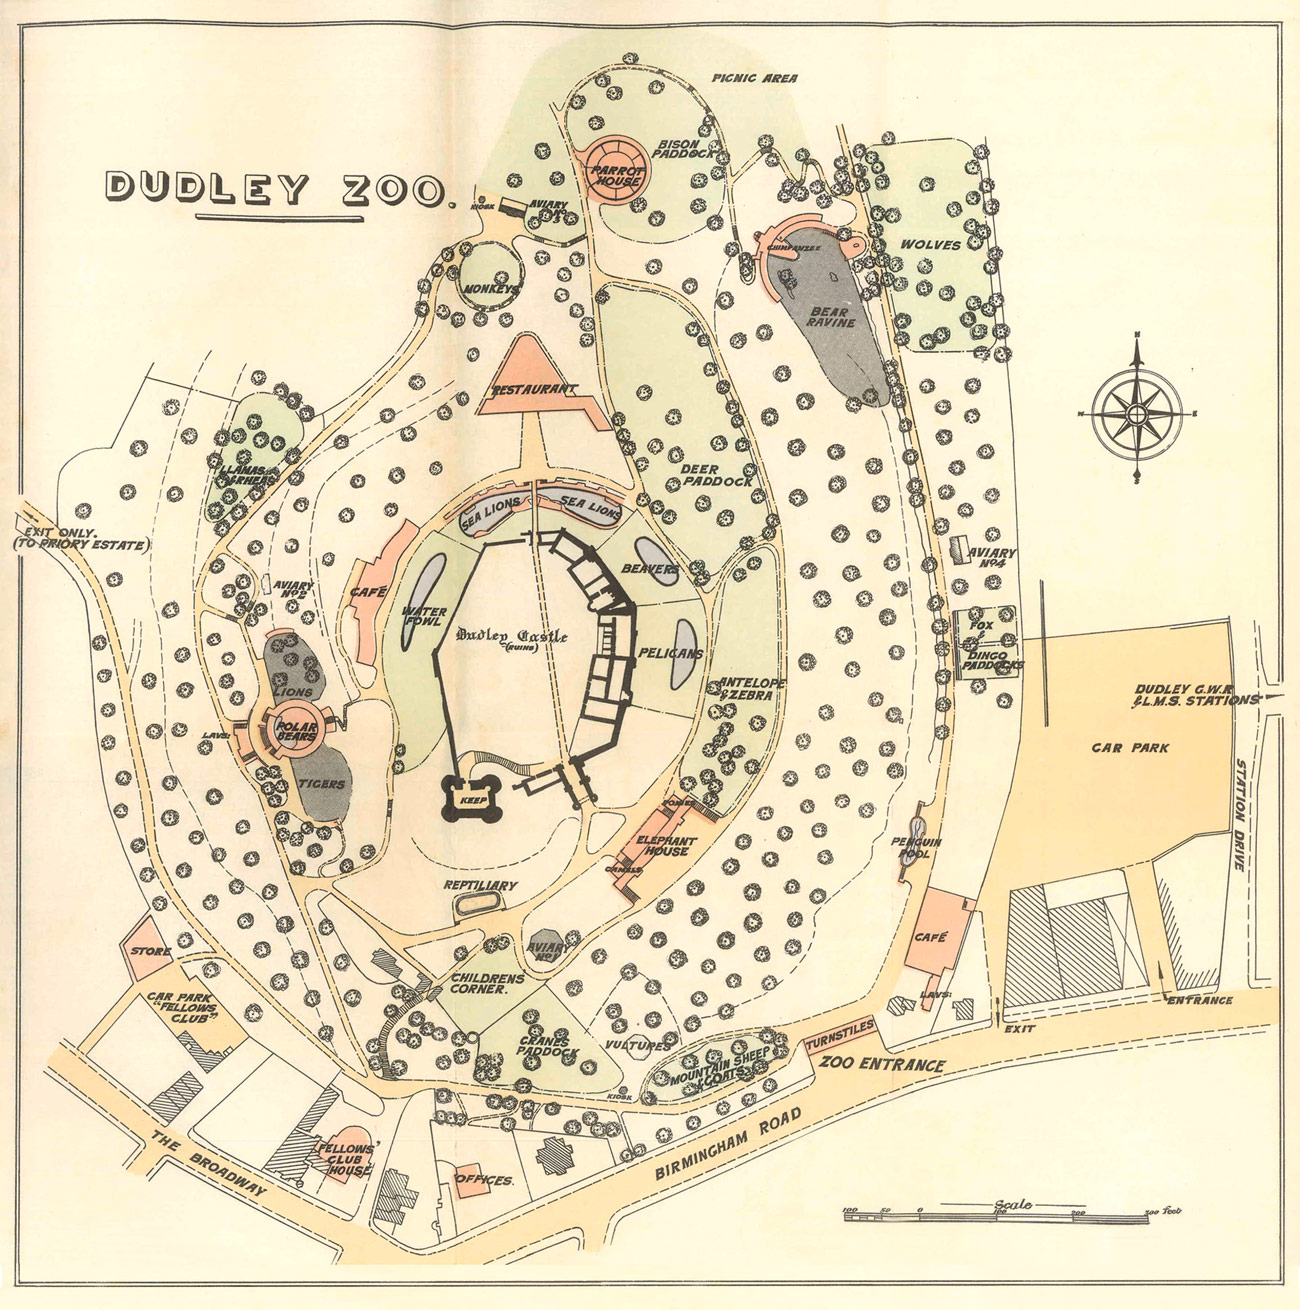 Hand drawn map of the Dudley Zoo